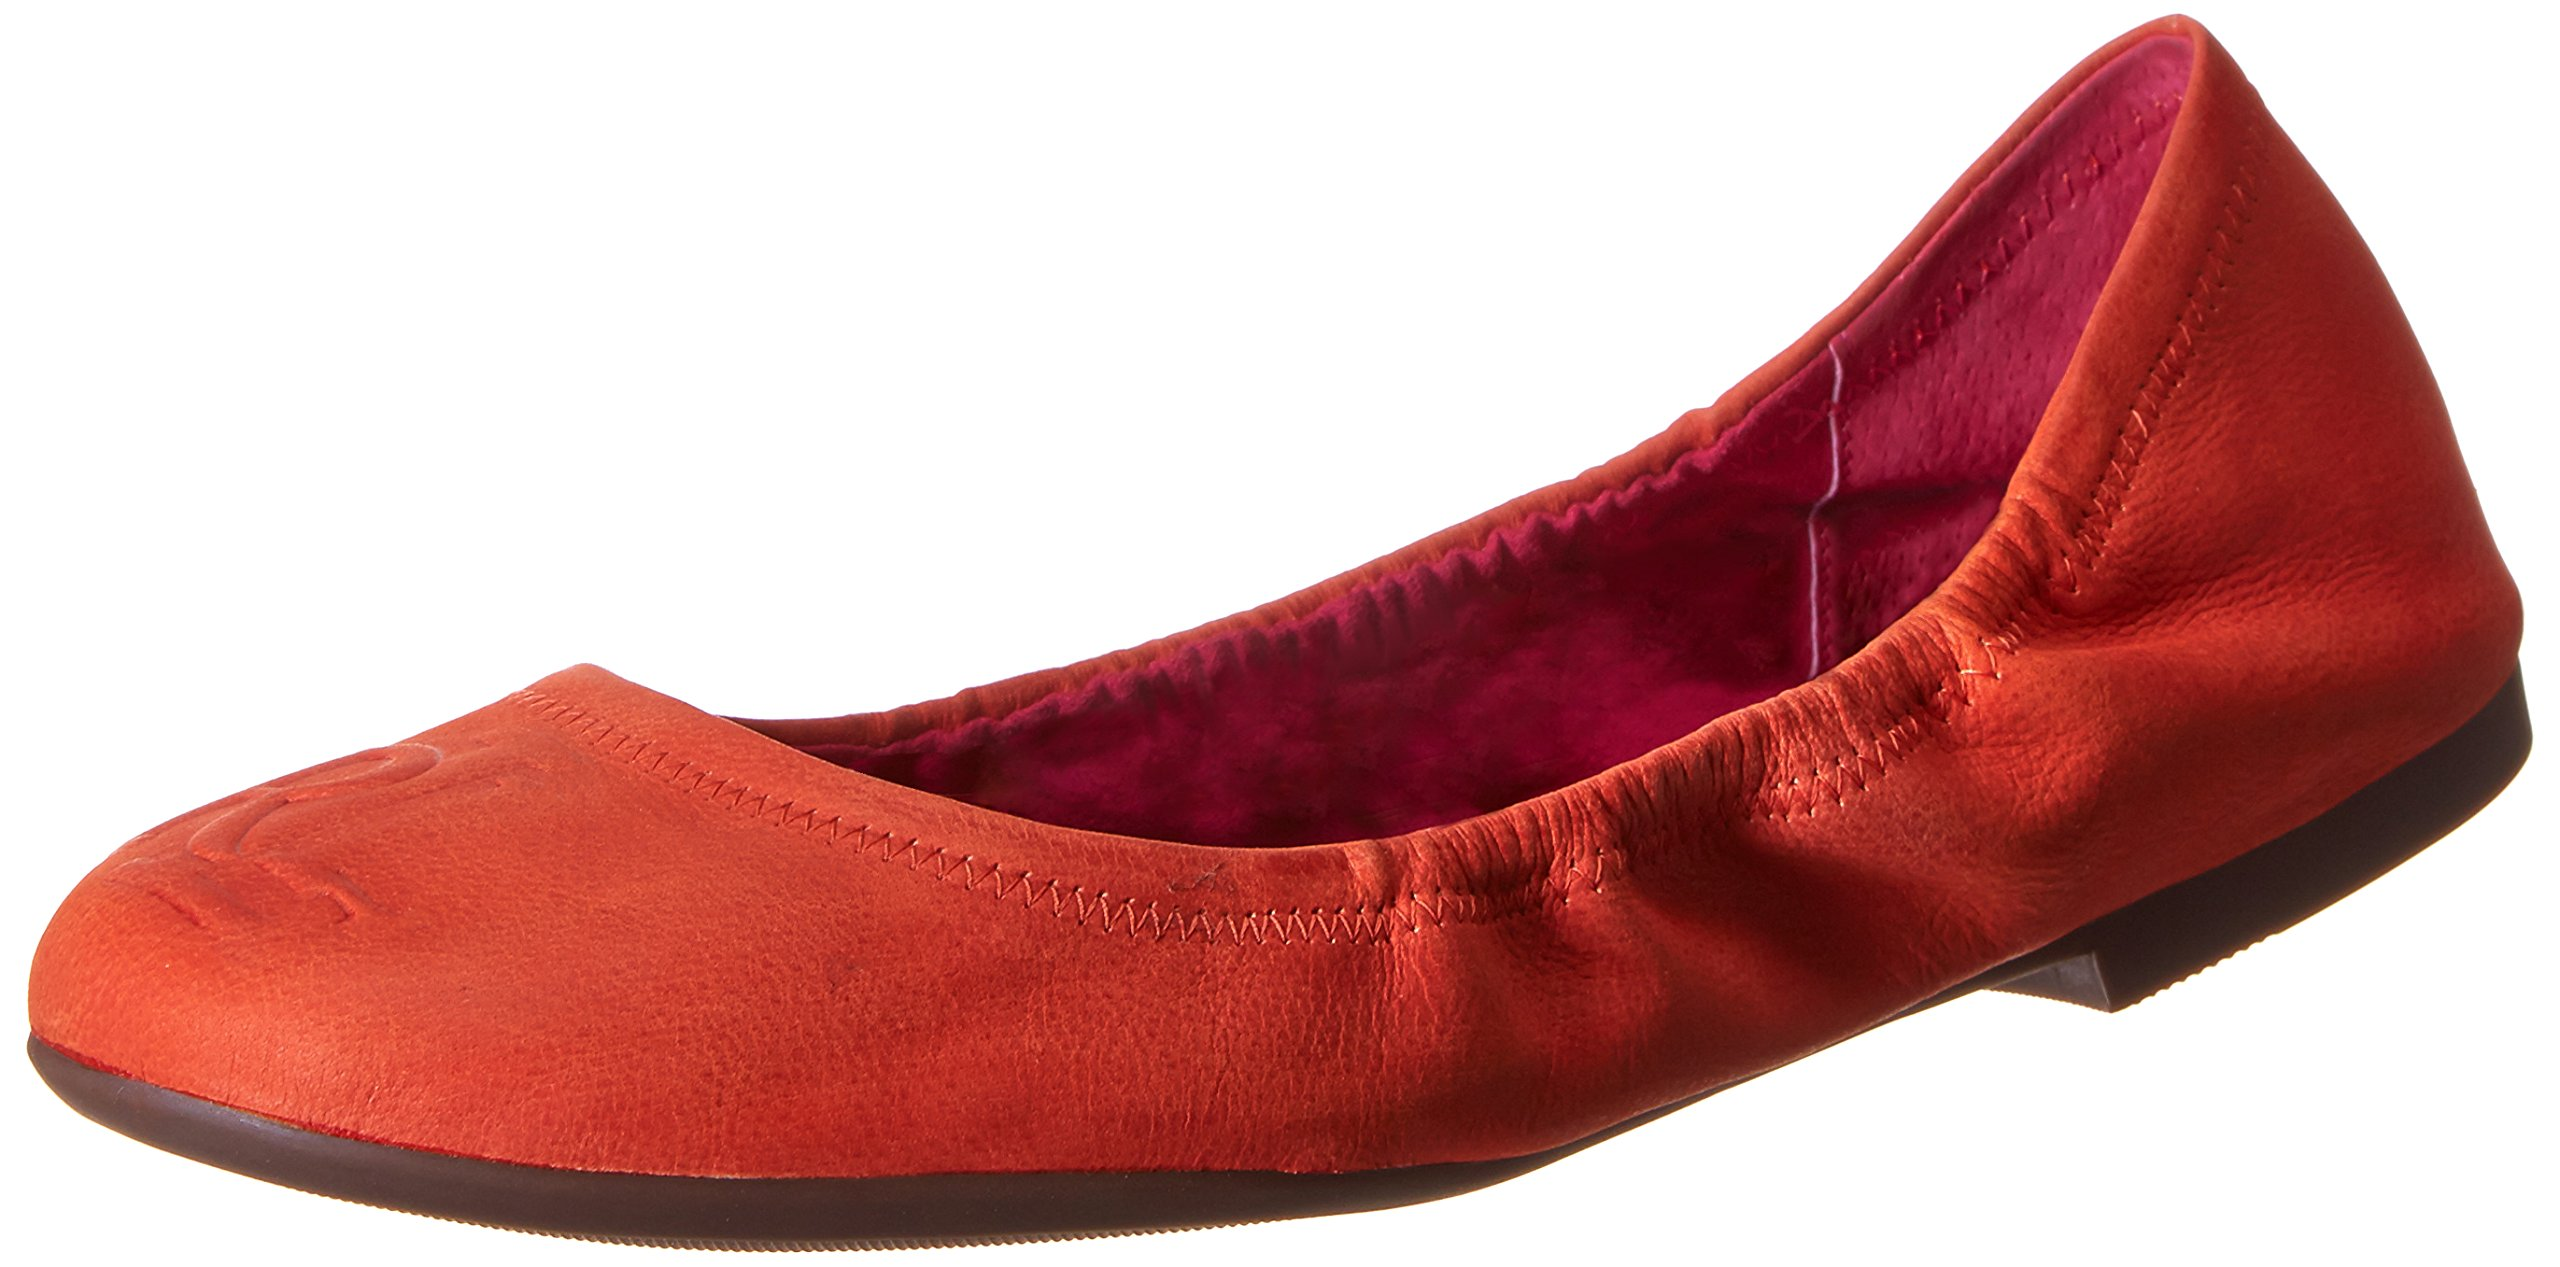 Lauren Ralph Lauren Women's Beatrice Ballet Flat, Acapulco Orange Soft Fine Grain, 6.5 B US